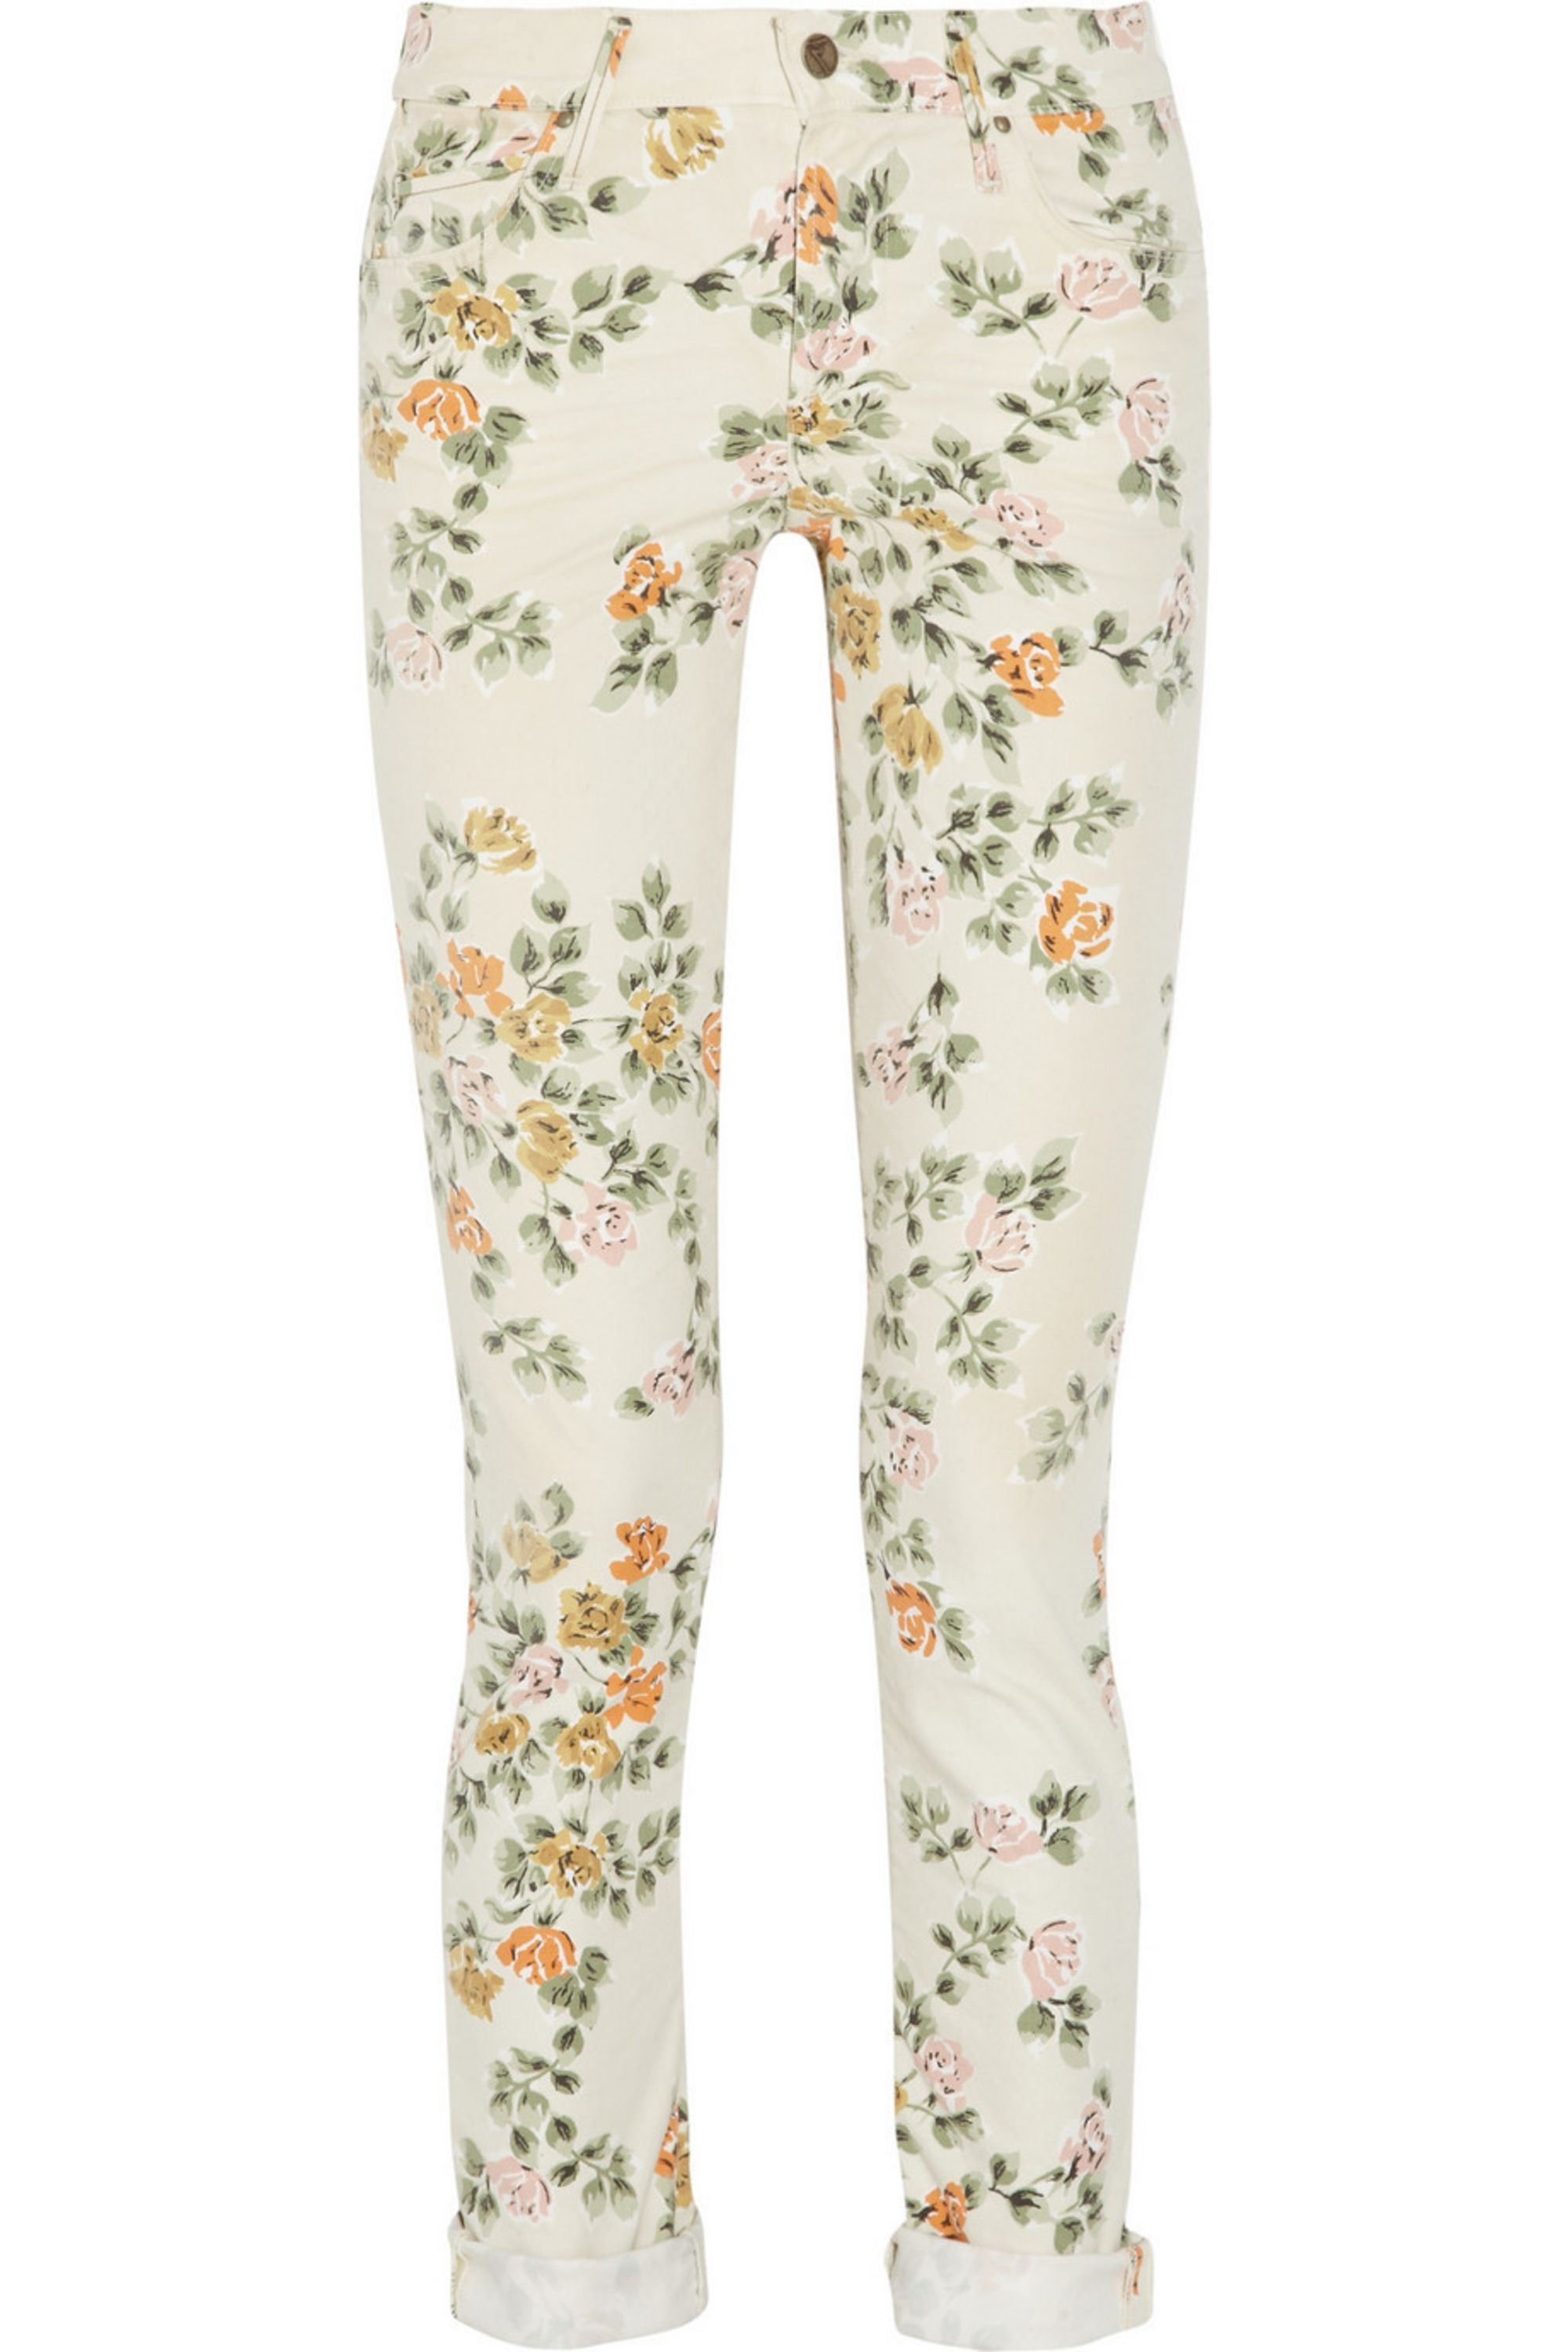 Citizens of Humanity Mandy printed high-rise skinny jeans